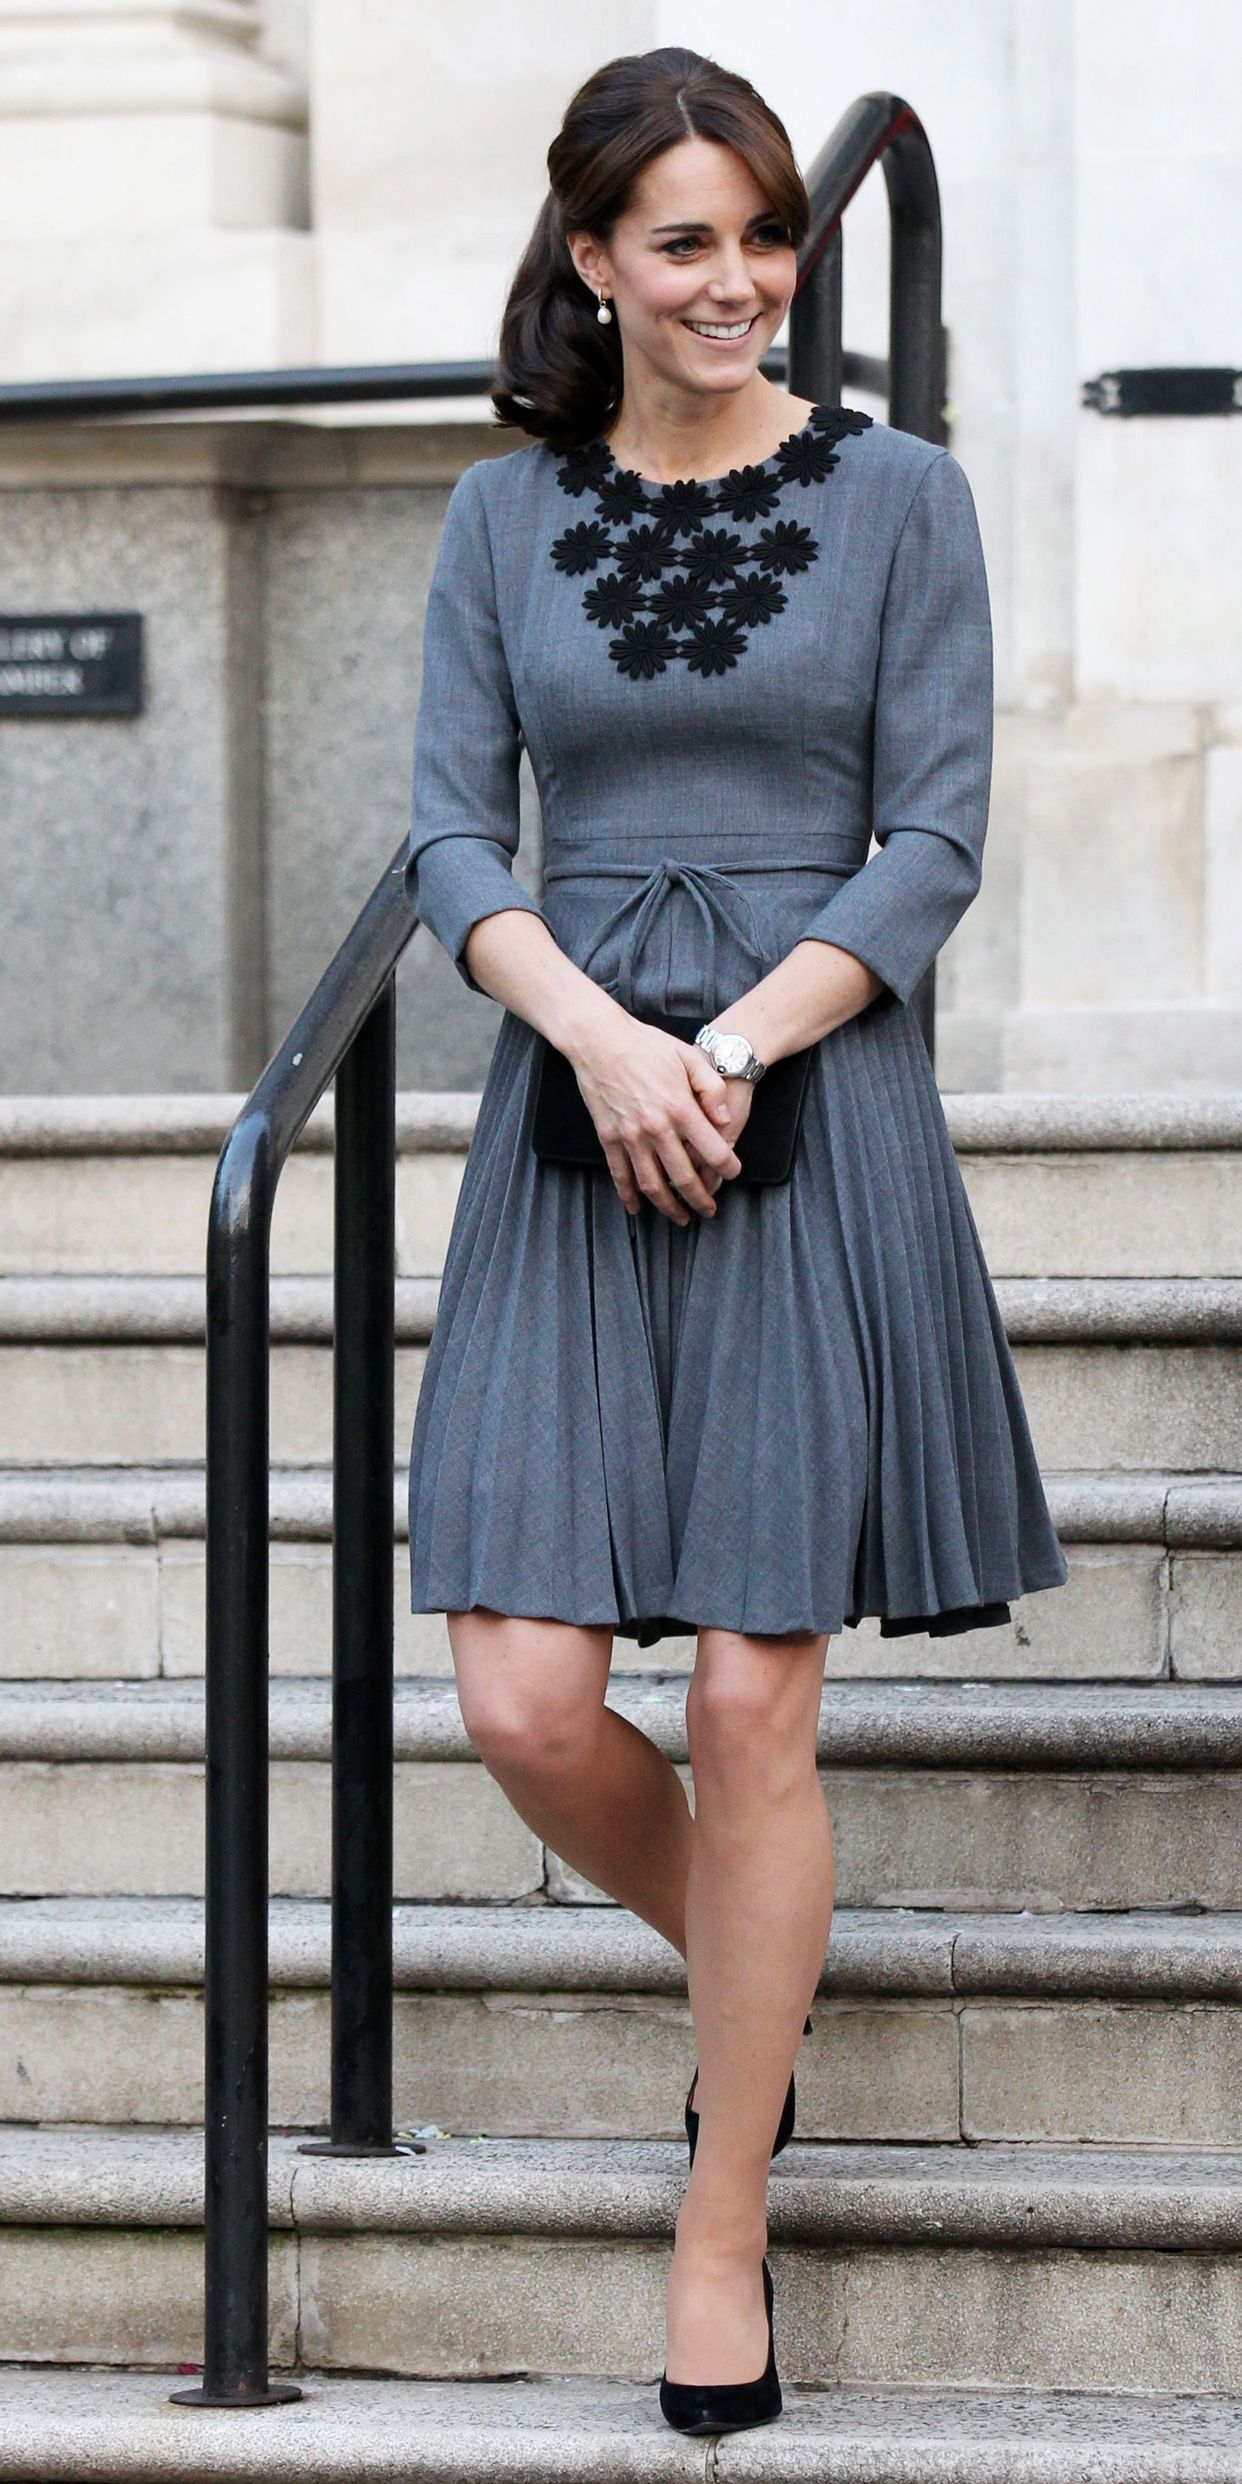 a29d562cf6334 Kate Middleton Is Gorgeous in Gray During Her Most Recent Royal Outing from  InStyle.com